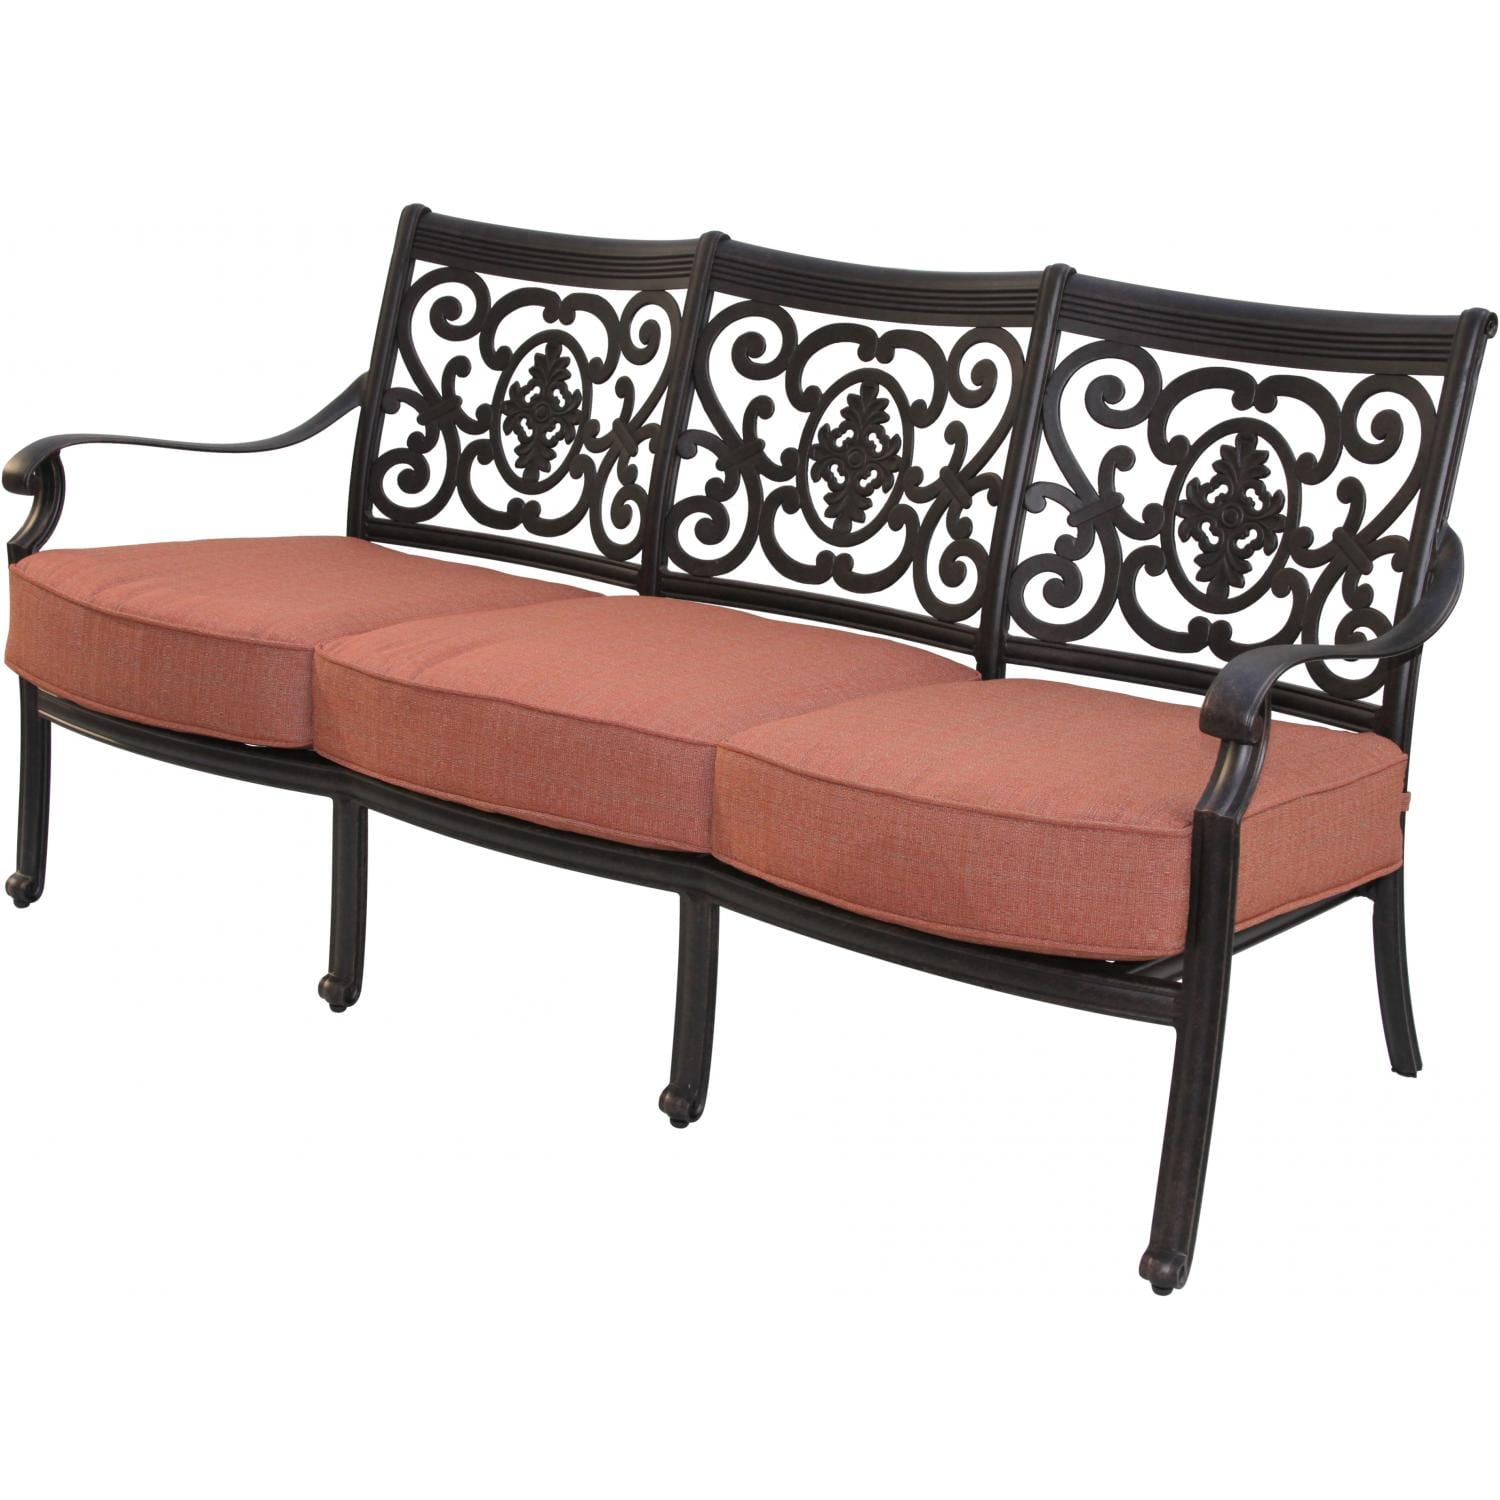 Darlee St. Cruz Cast Aluminum Patio Sofa